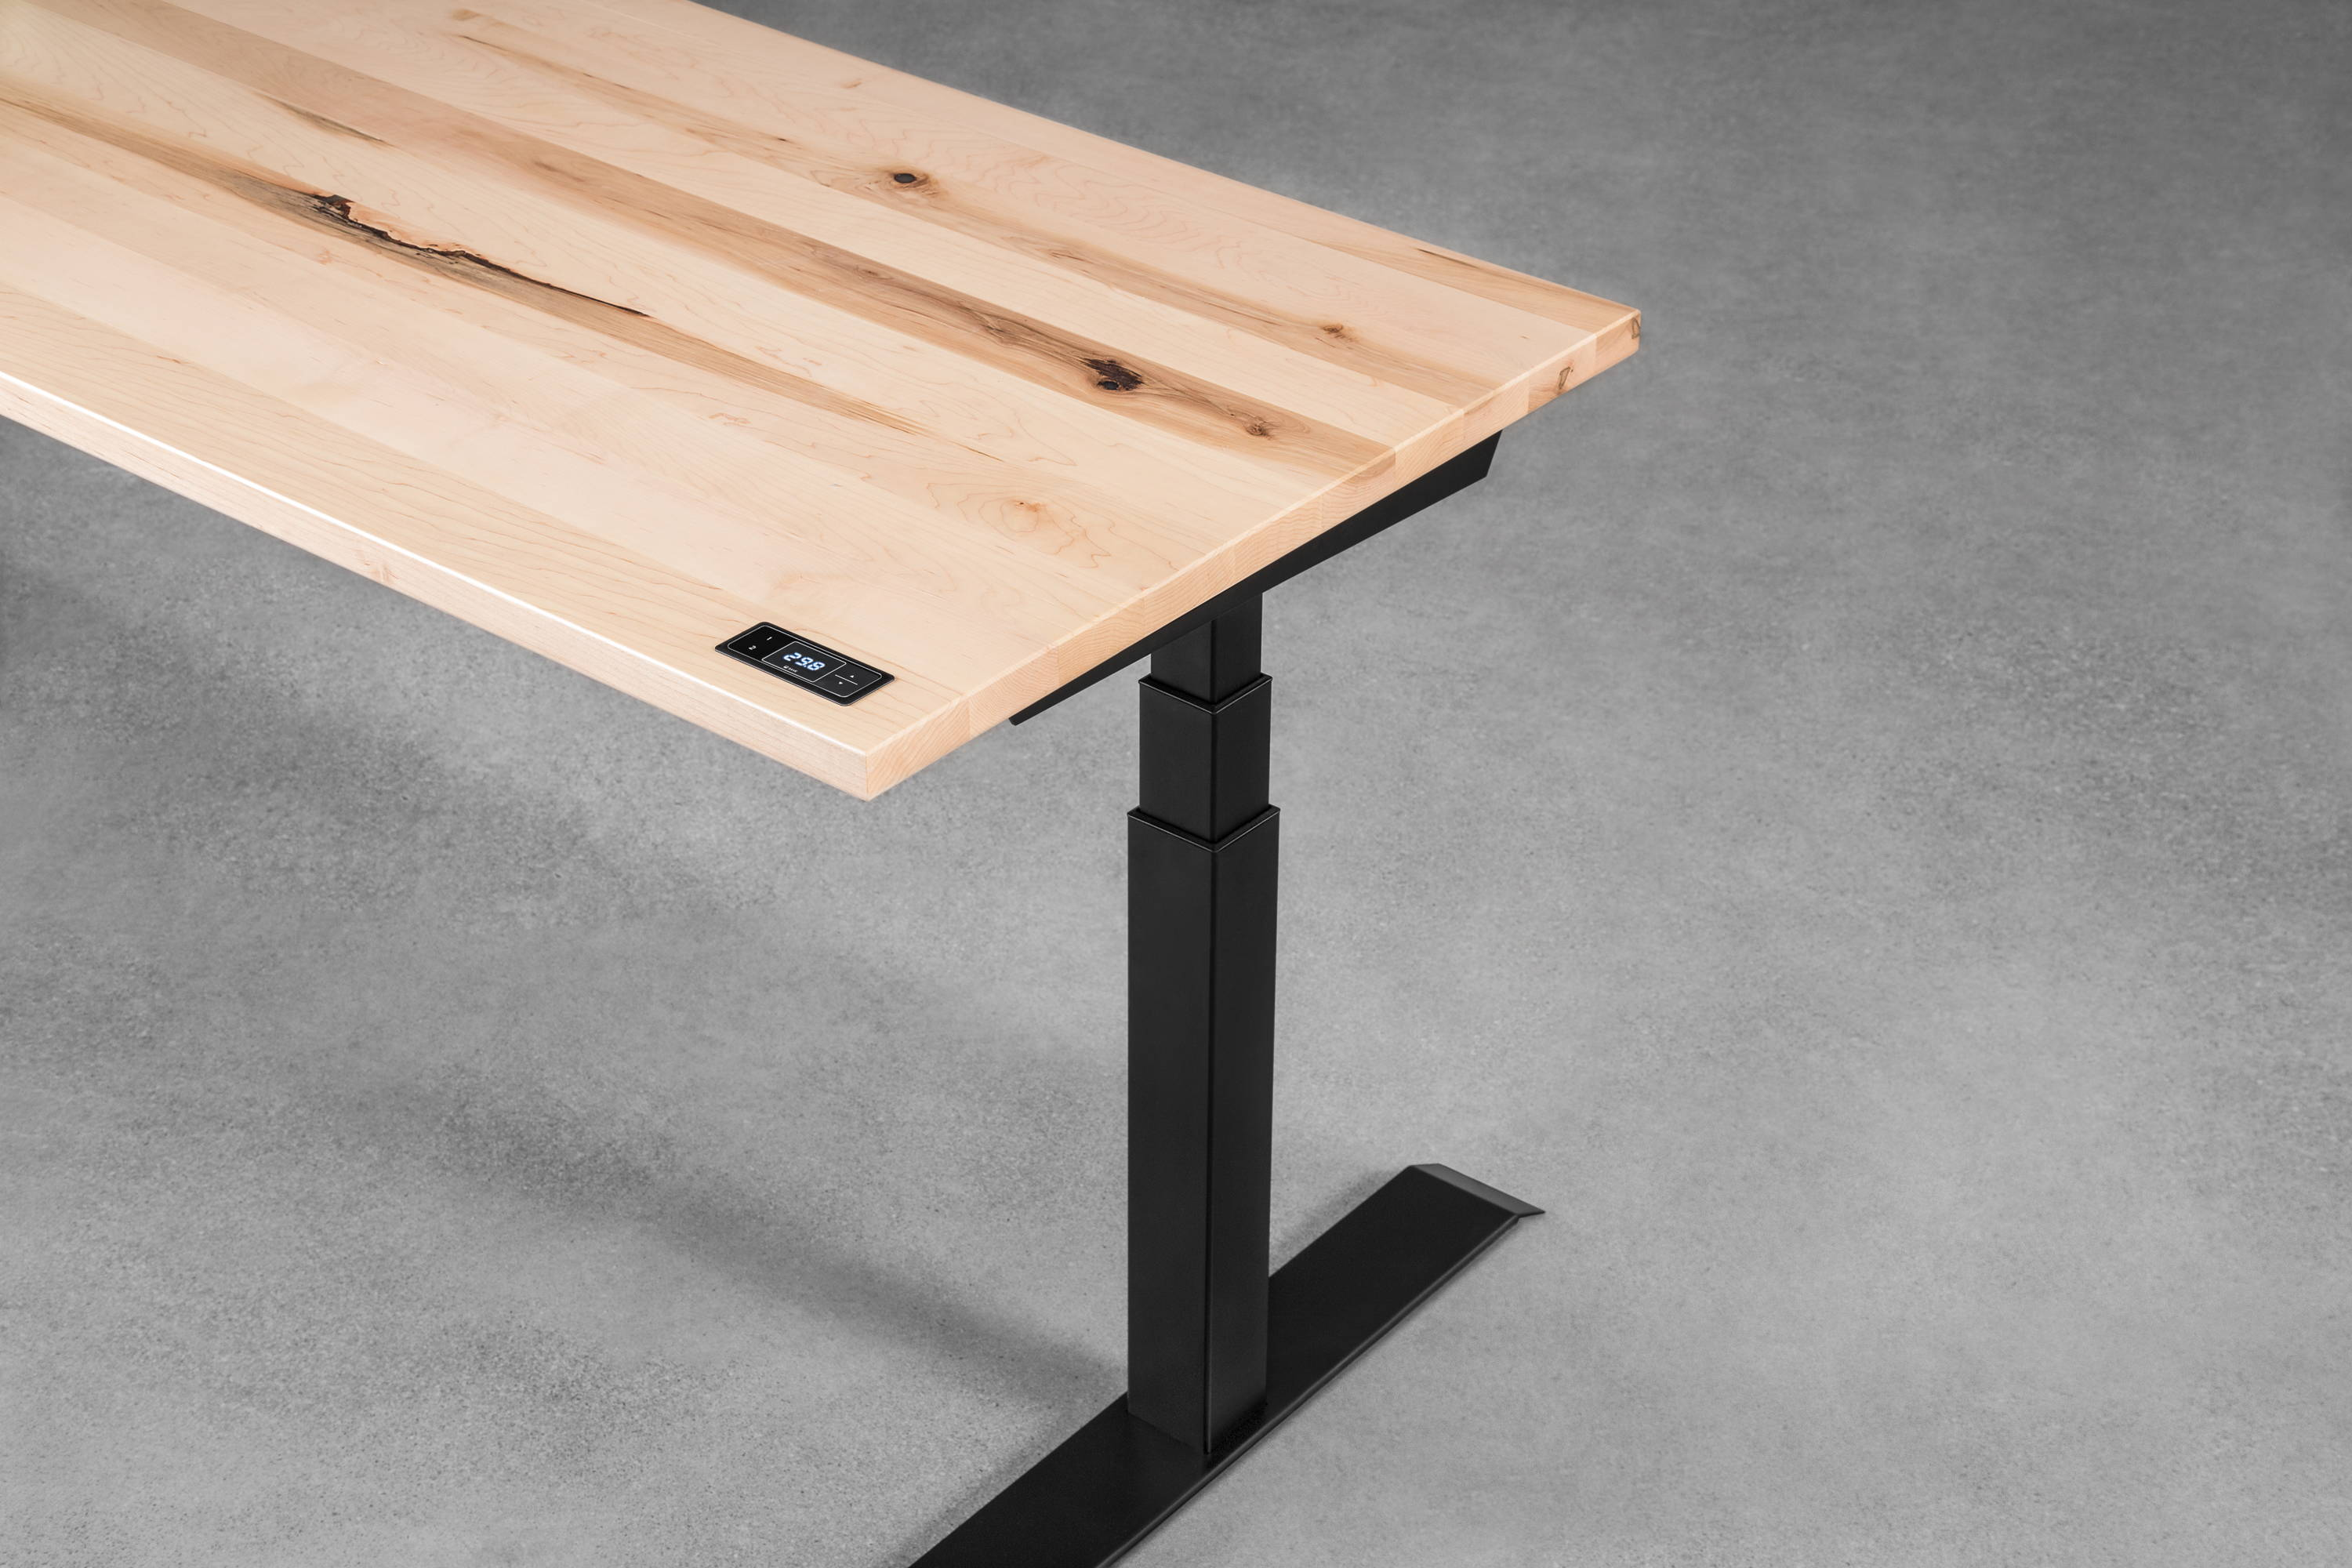 Sway maple - sit-stand desk - ergonofis